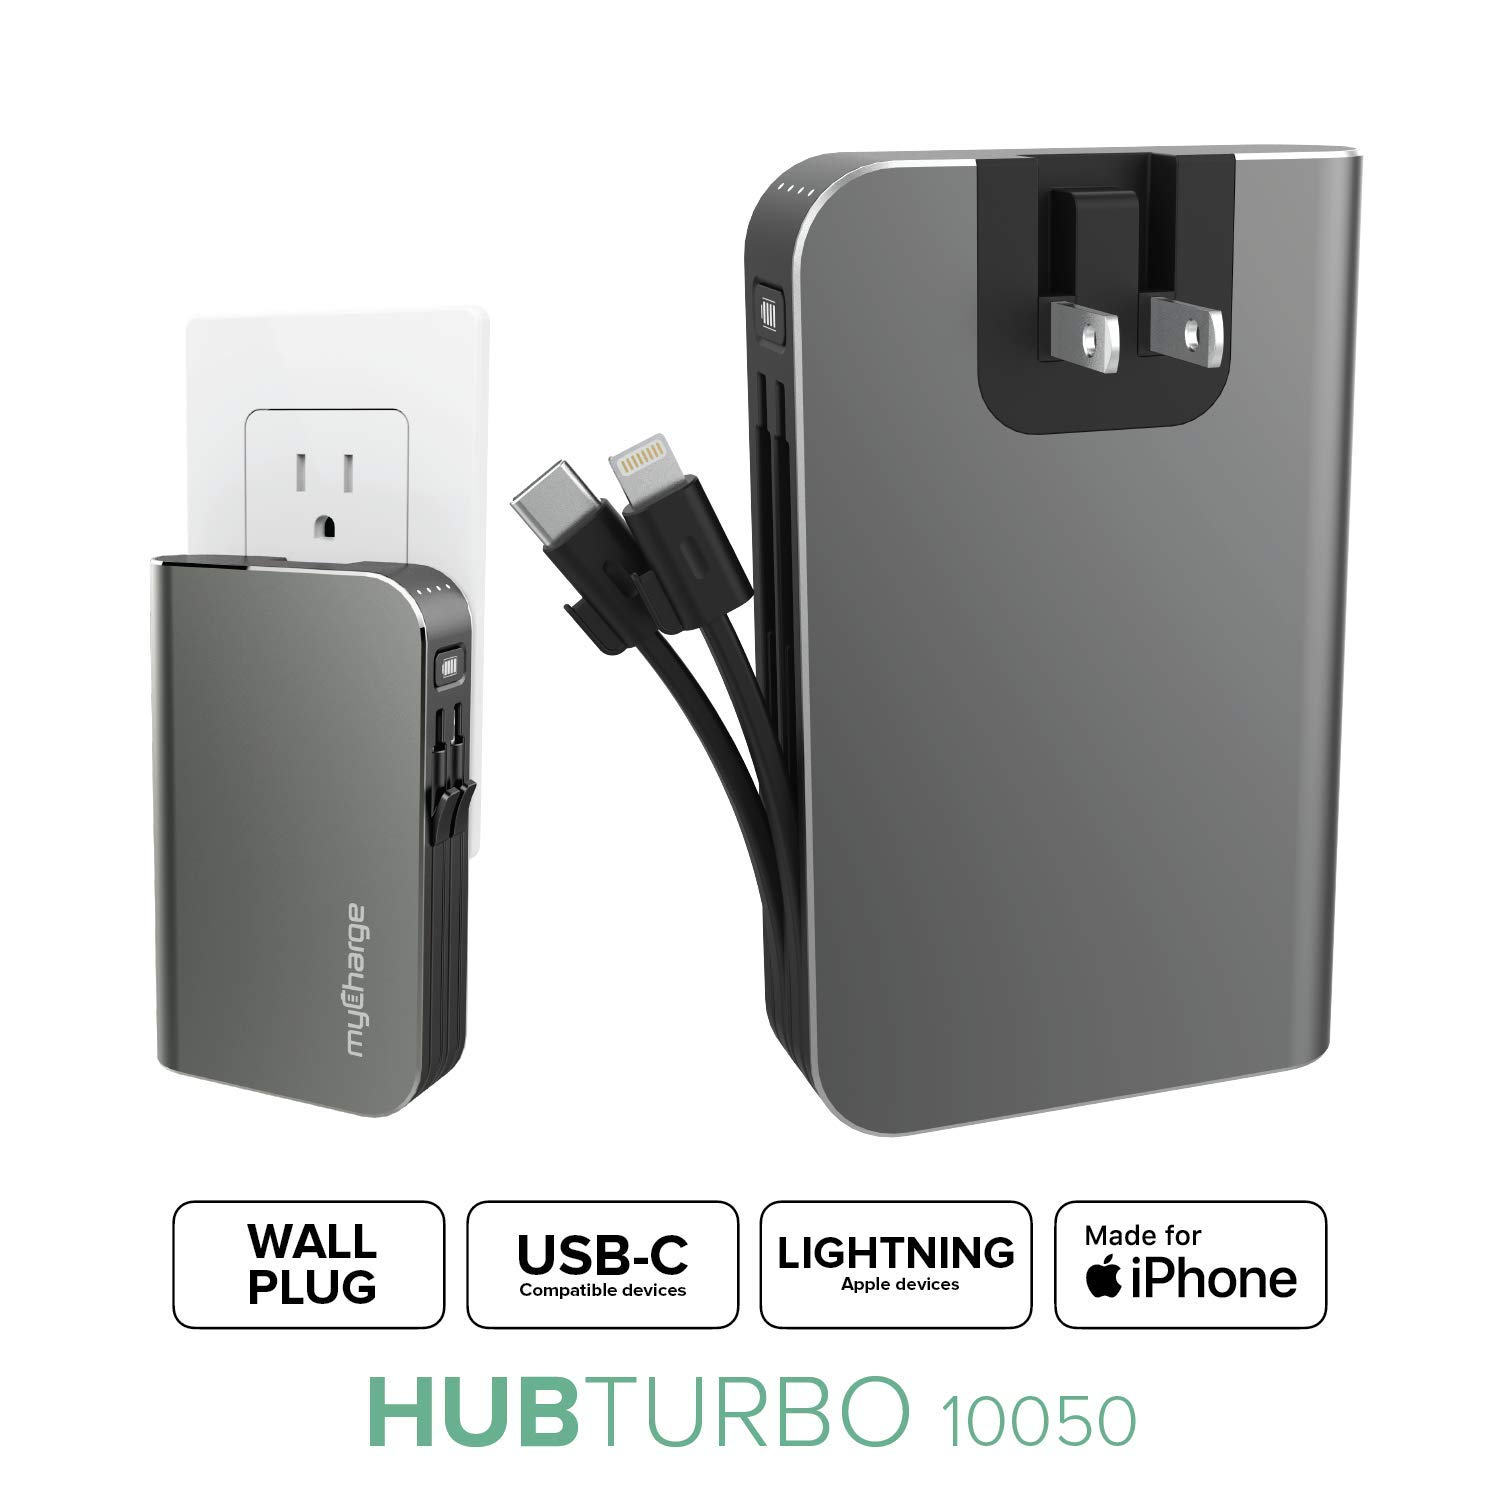 myCharge Portable Charger with Built in Cables [iPhone Lightning + USB C] 10050 mAh 18W Fast Charge Hub Turbo Power Bank External Battery Pack | AC Wall Charger Plug, Dual Cords, USB-A Output